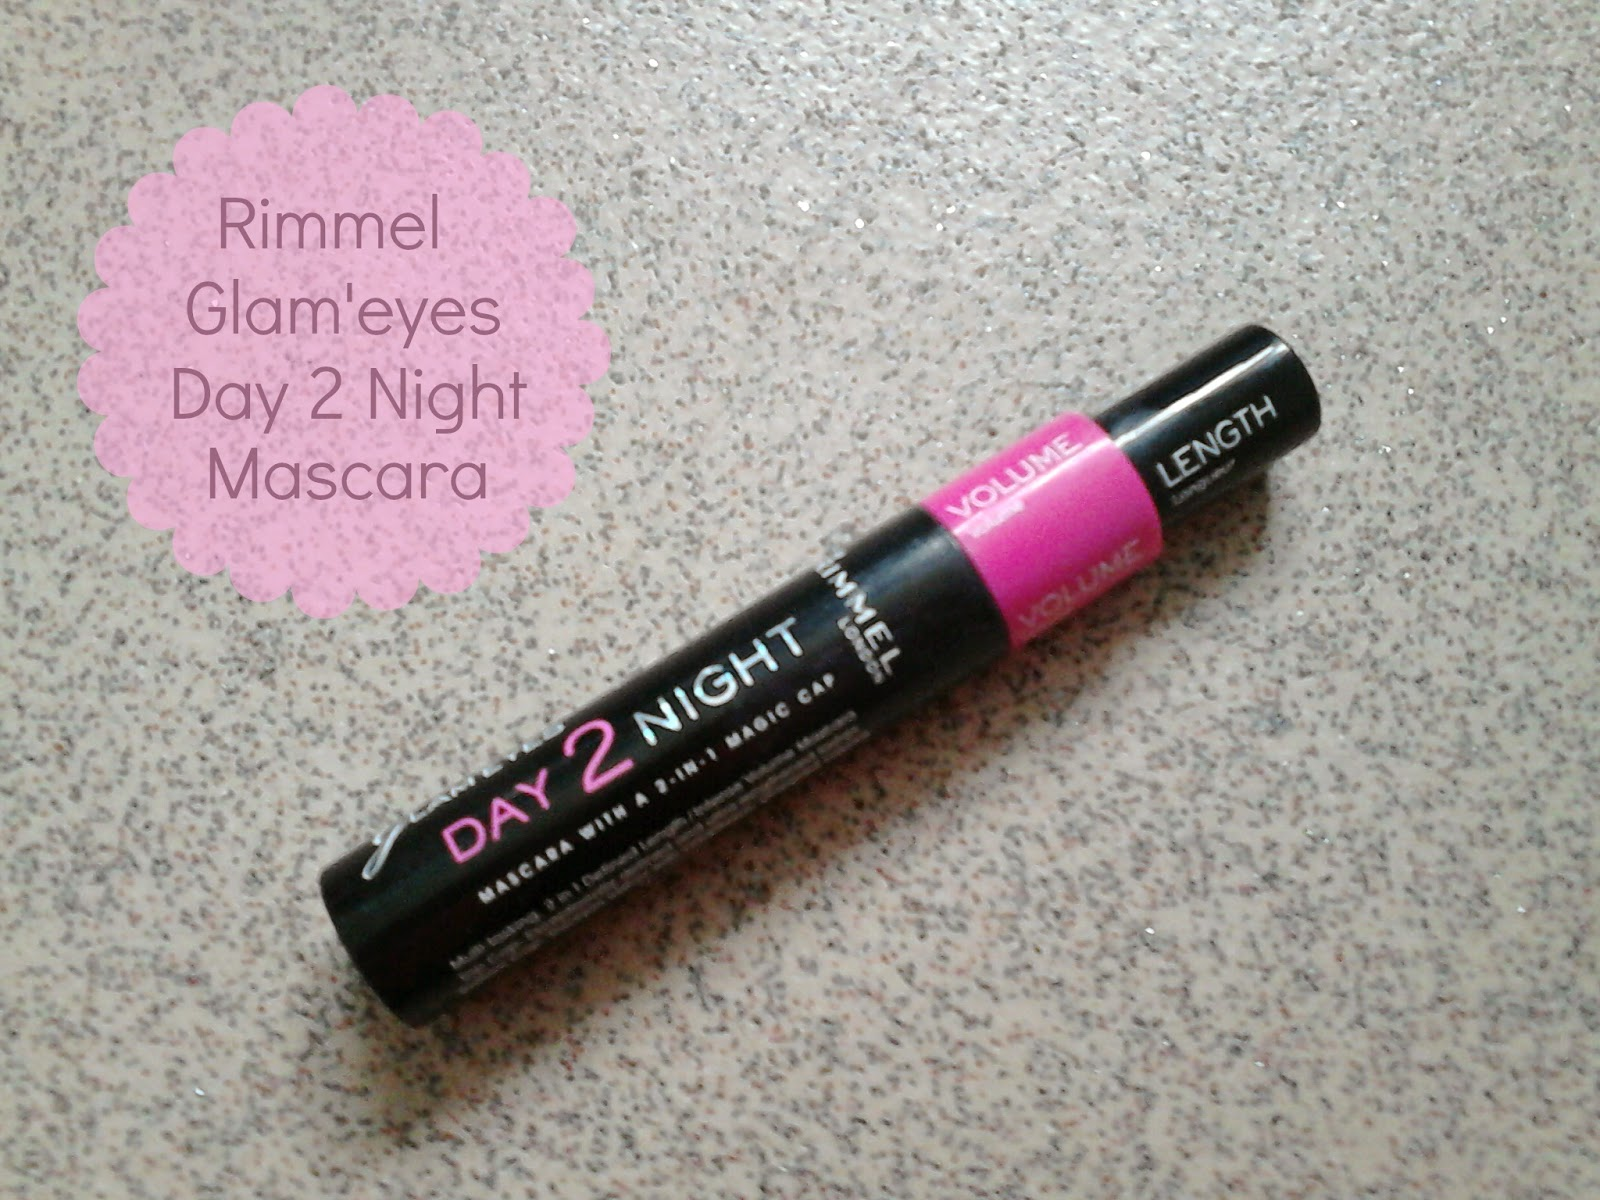 Rimmel Glam'eyes Day 2 Night Mascara